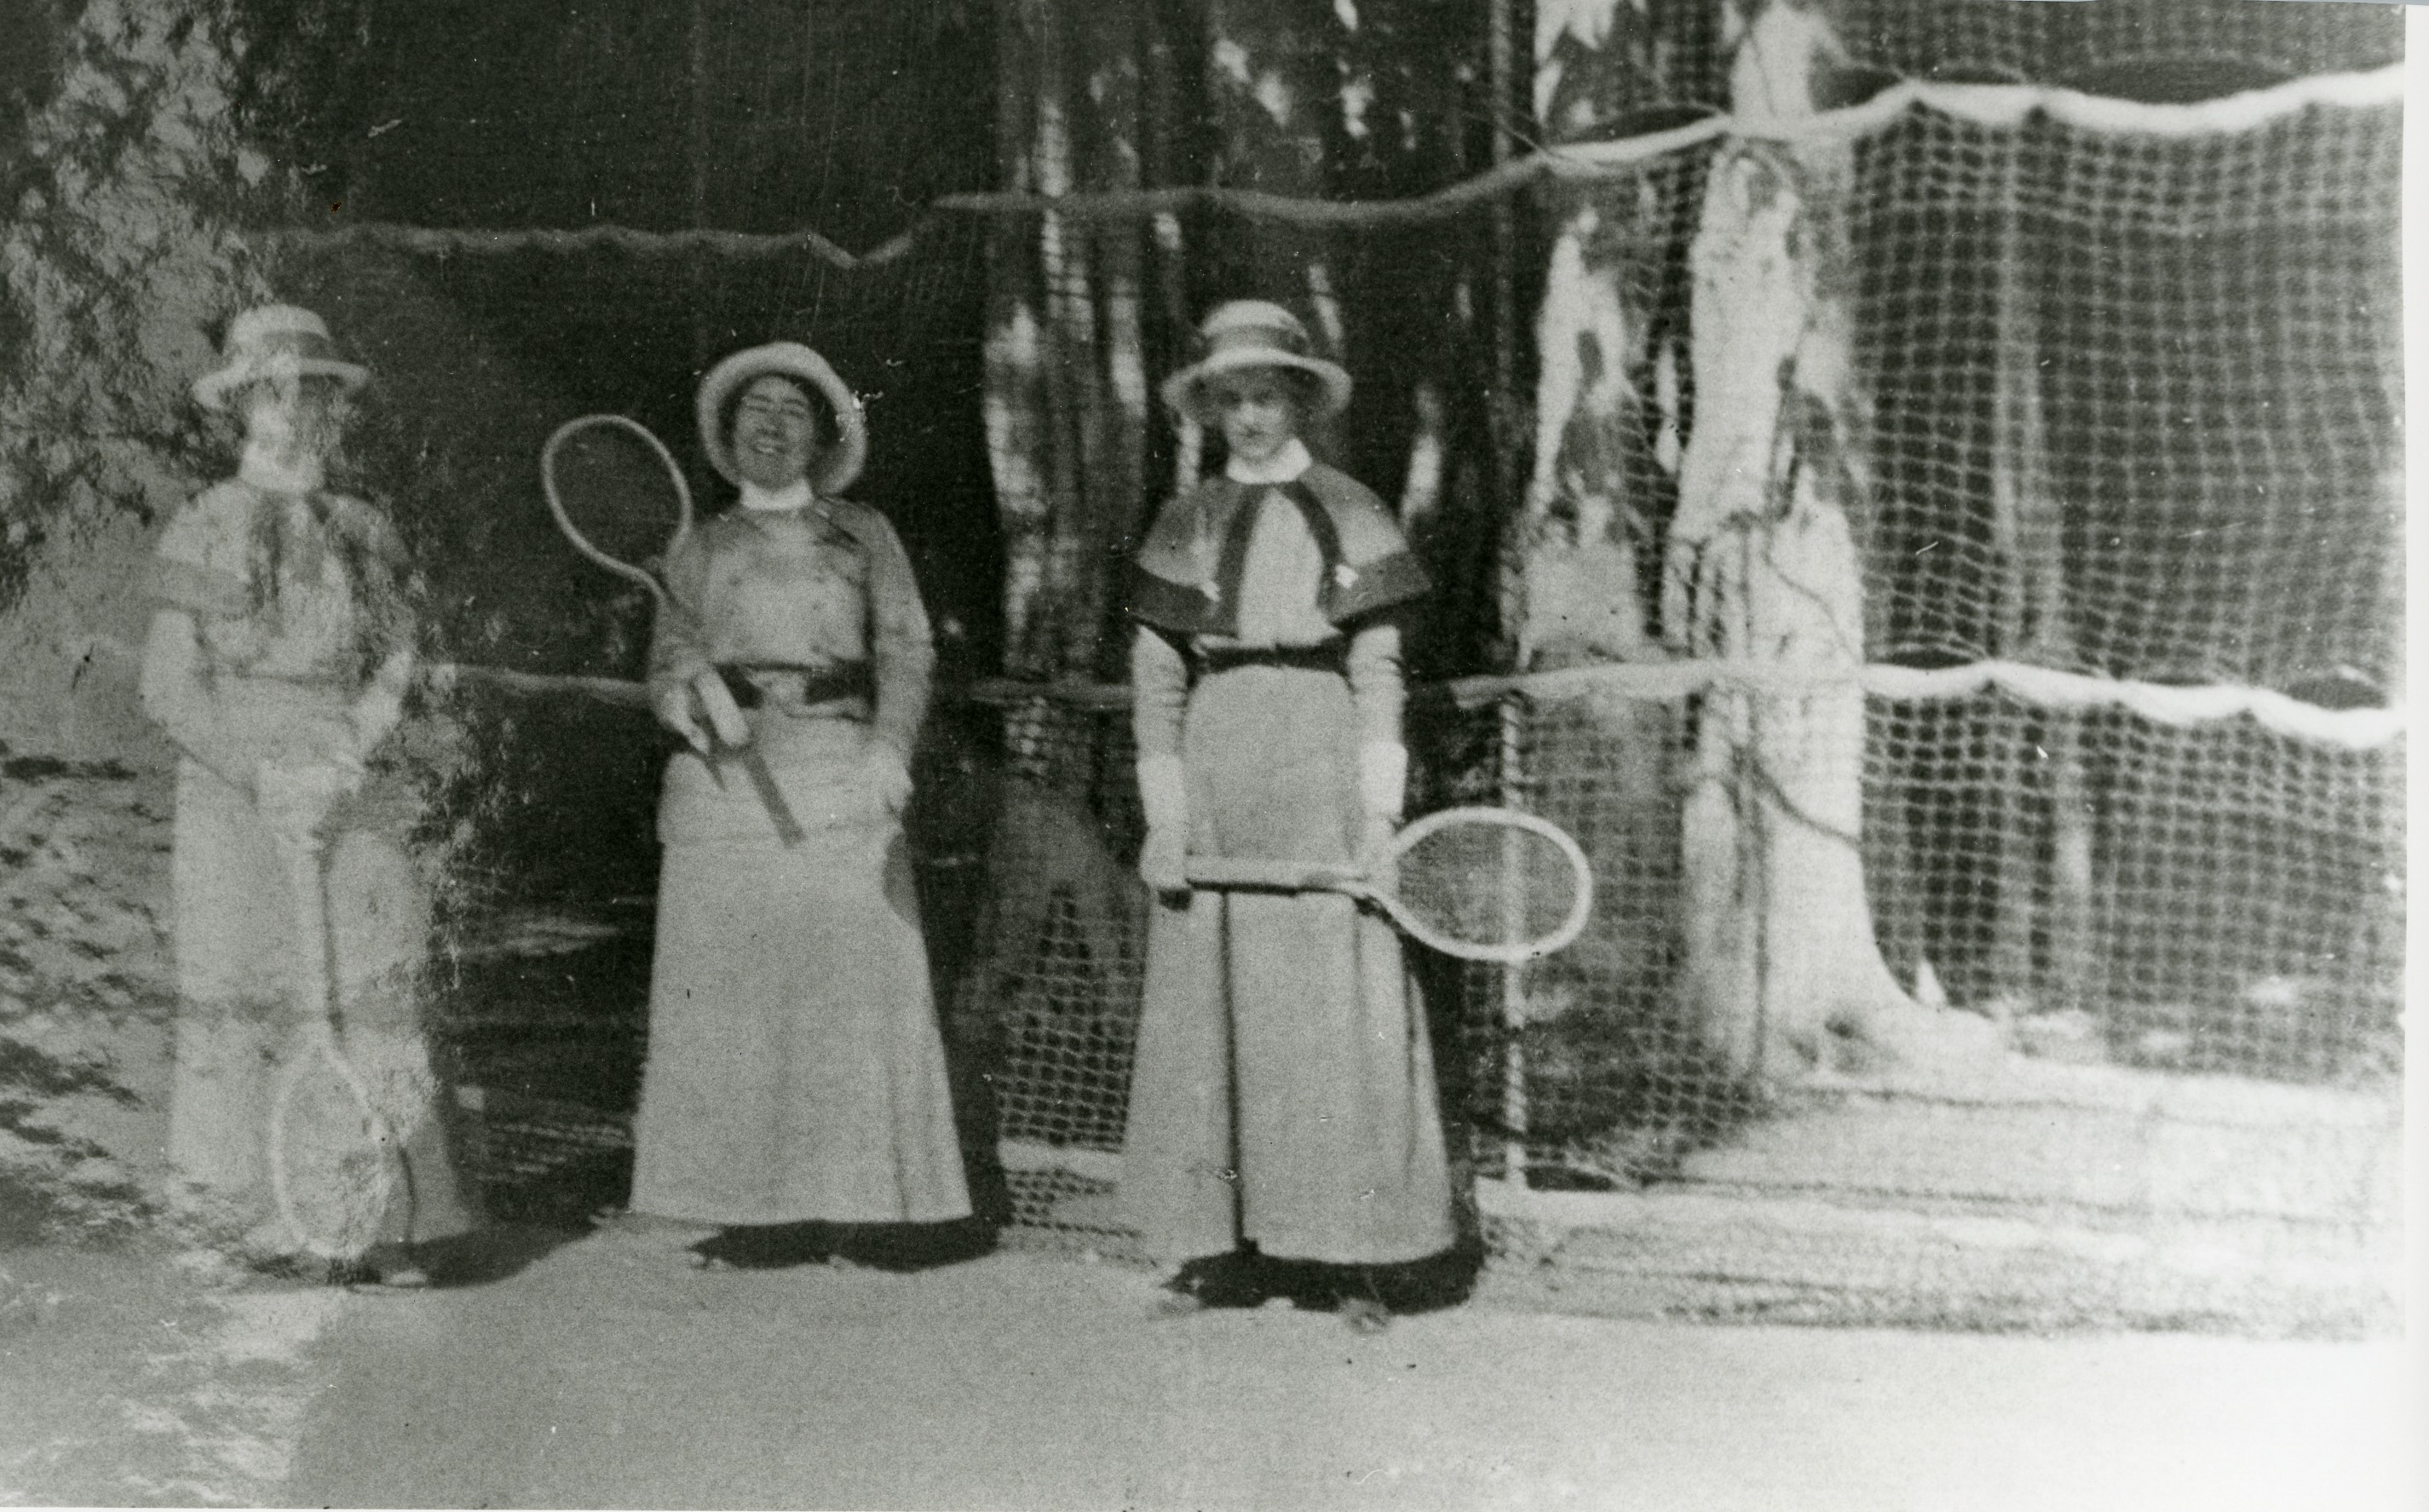 Tennis at Pasha's Palace